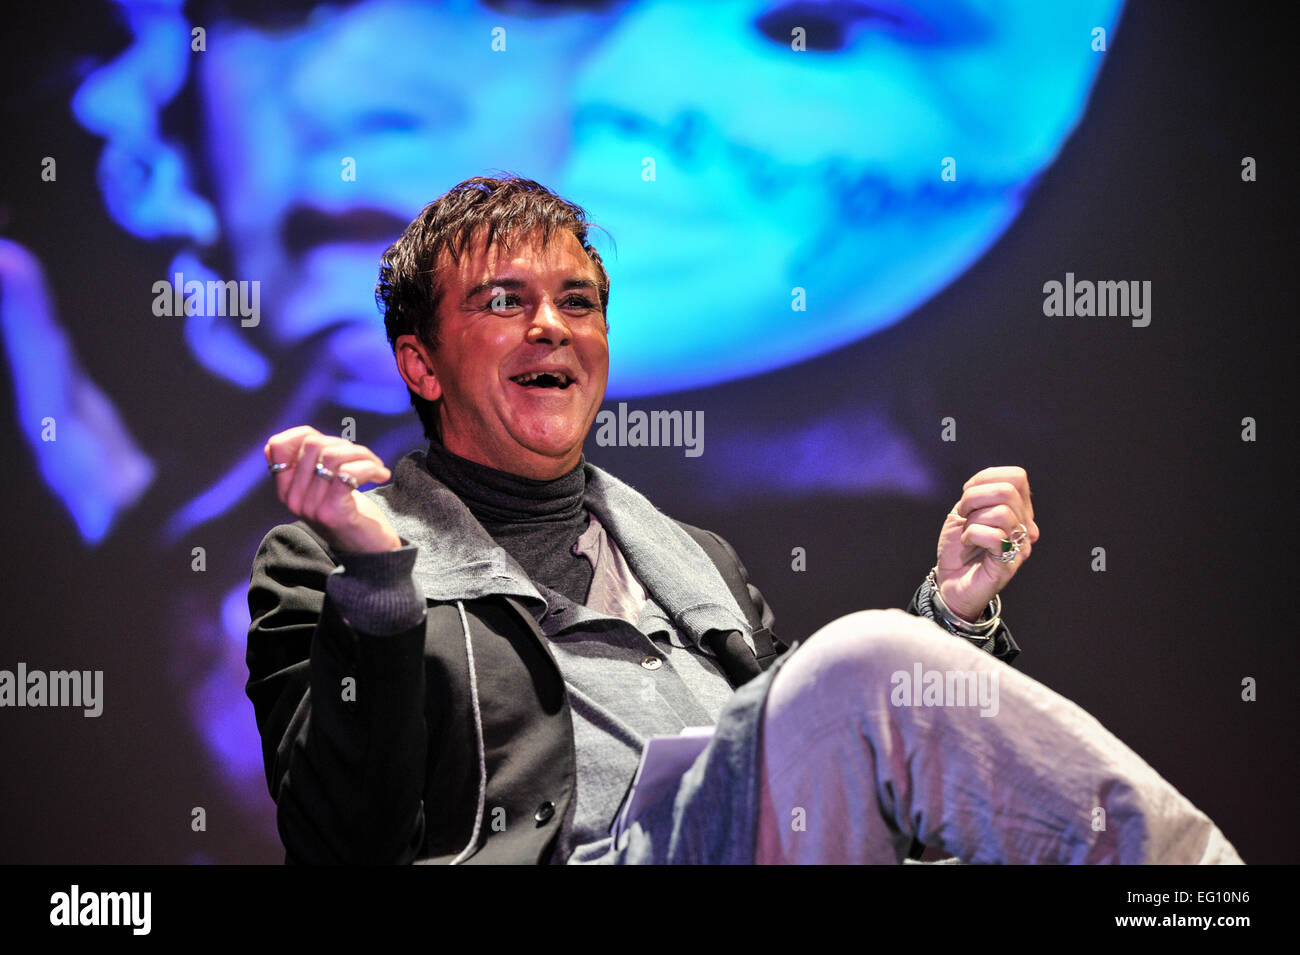 FILE PIC: Southampton, UK. 27th February, 2013. Steve strange, lead singer of 1980s pop band Visage who has died - Stock Image